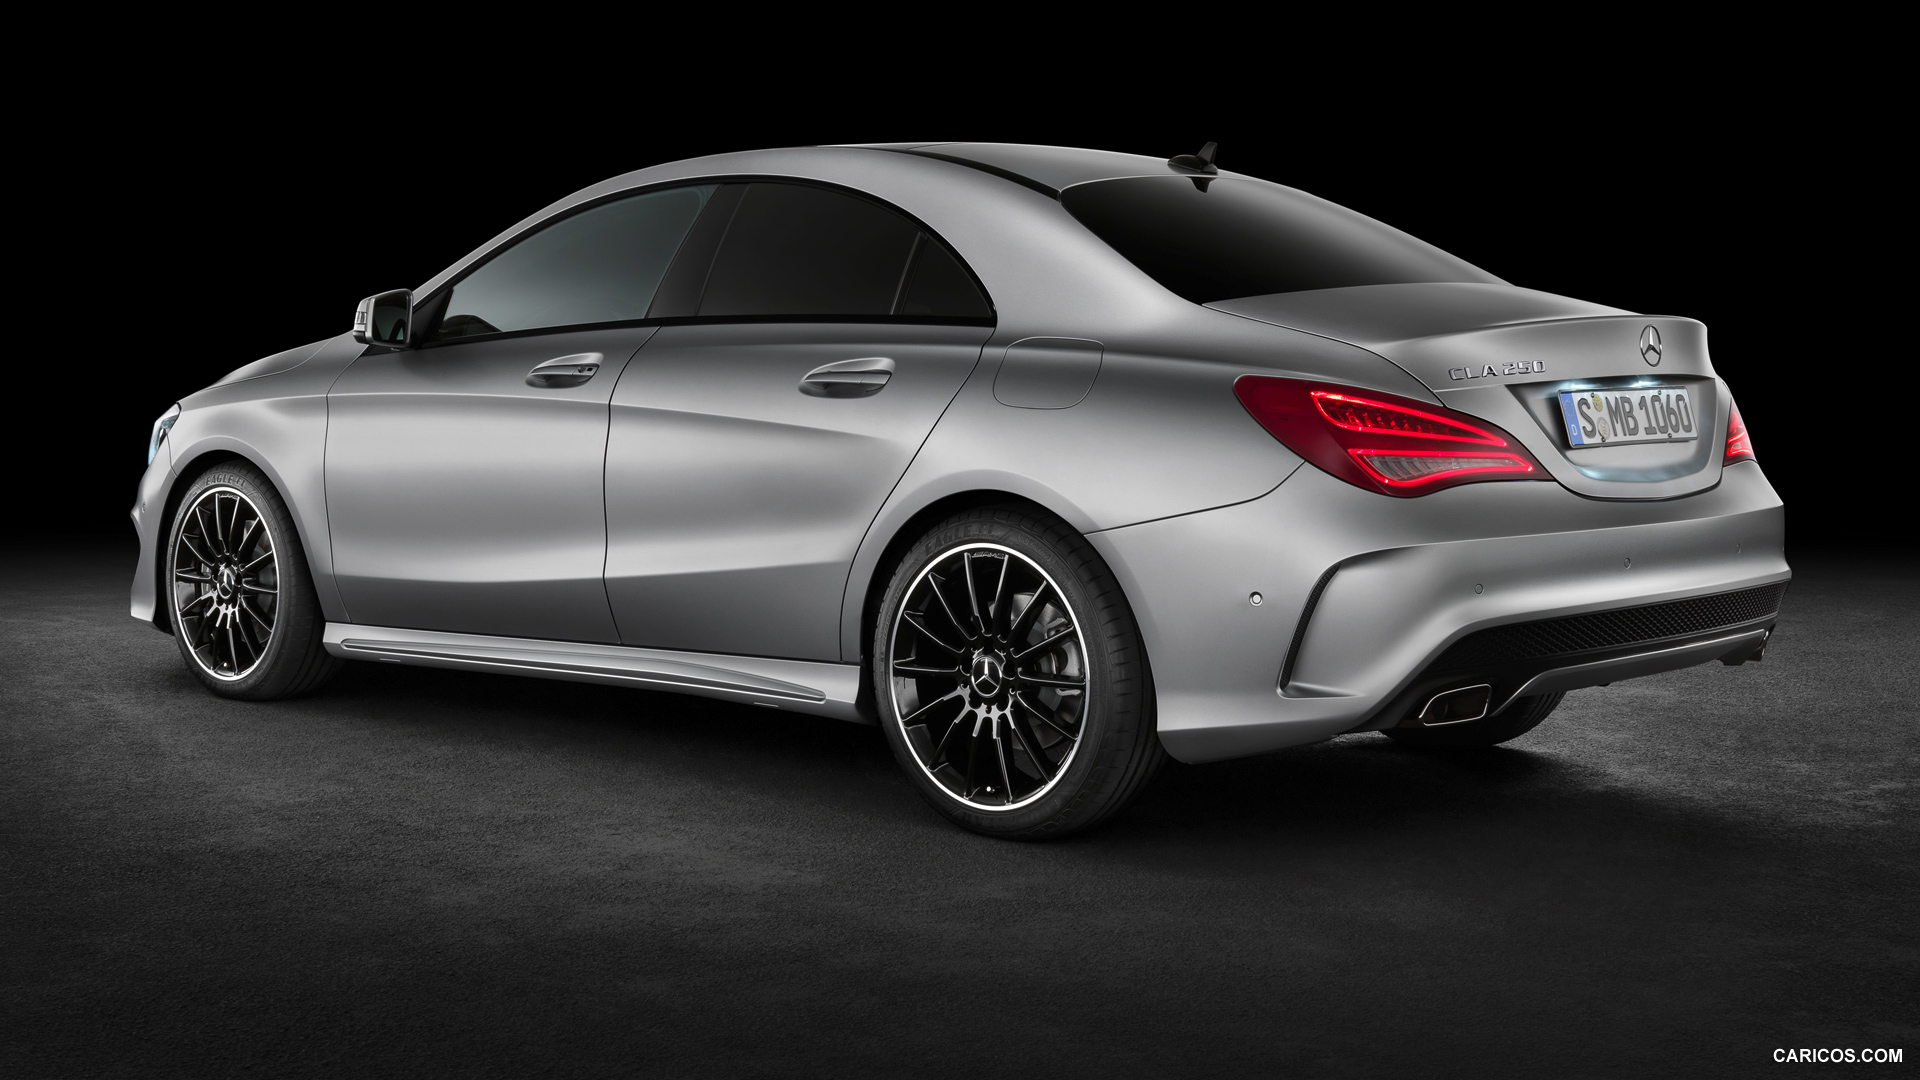 2014 mercedes benz cla class information and photos for 2014 mercedes benz cla class cla250